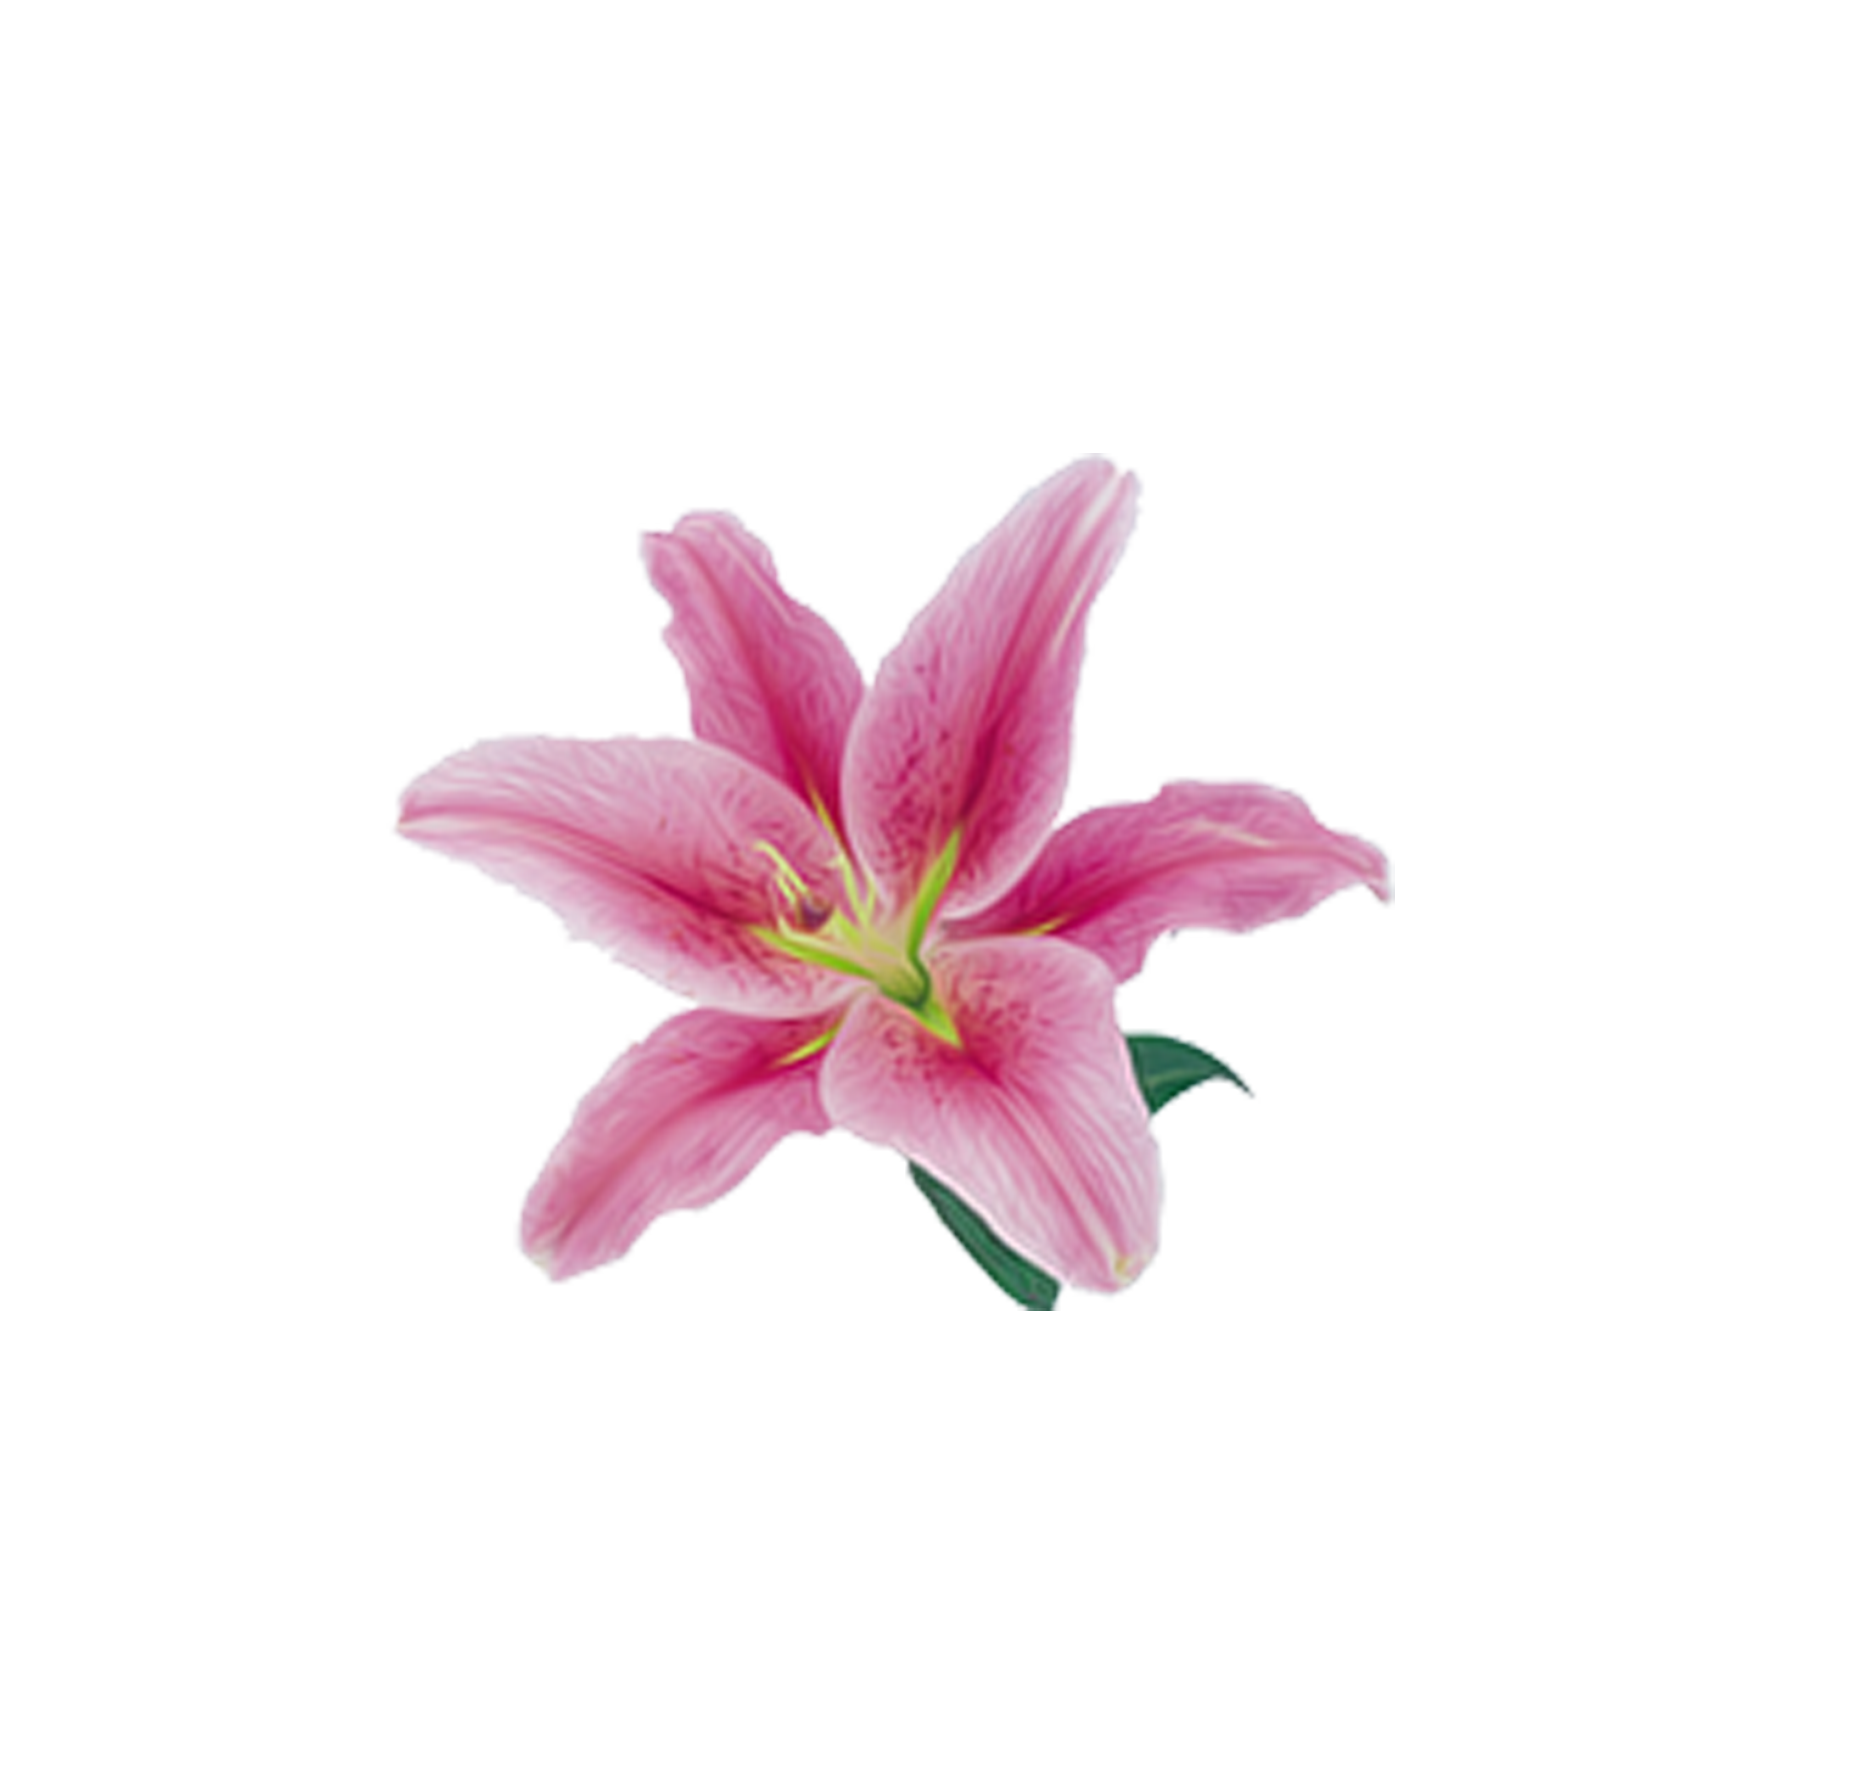 Pink lily png. Lilium flower beautiful decorative